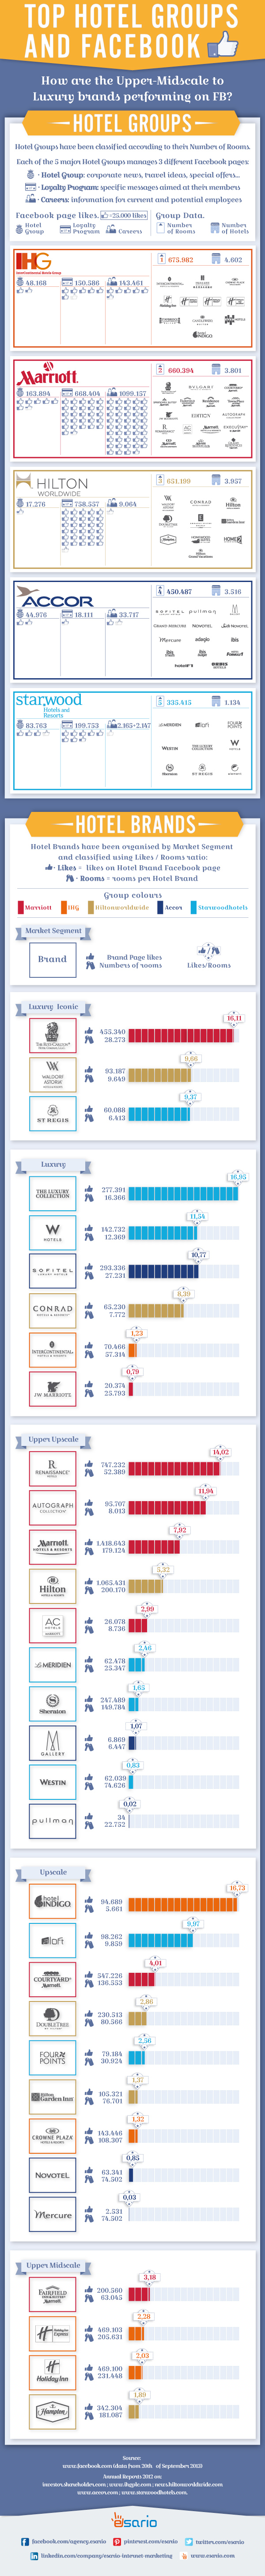 Hotel Brands Infographic